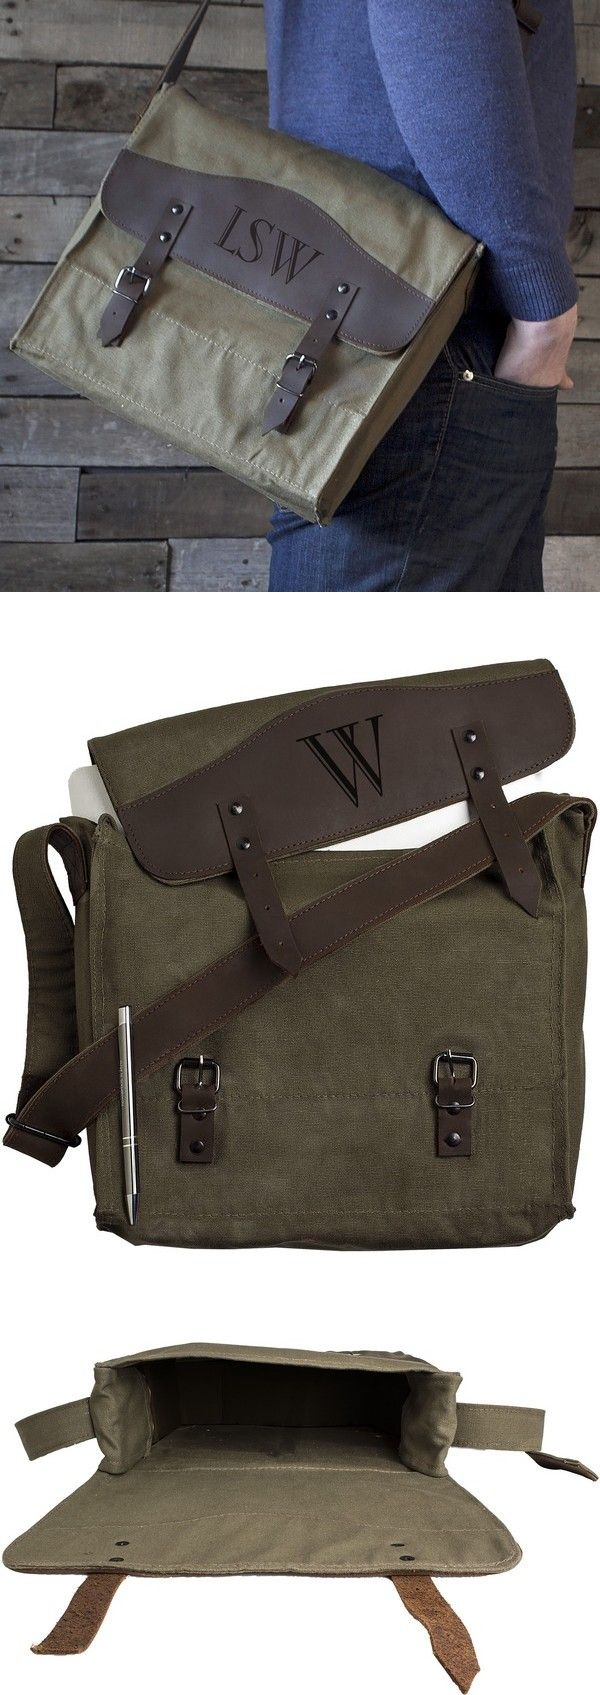 Personalized 13 x 11 Green Canvas & Leather Messenger Bag